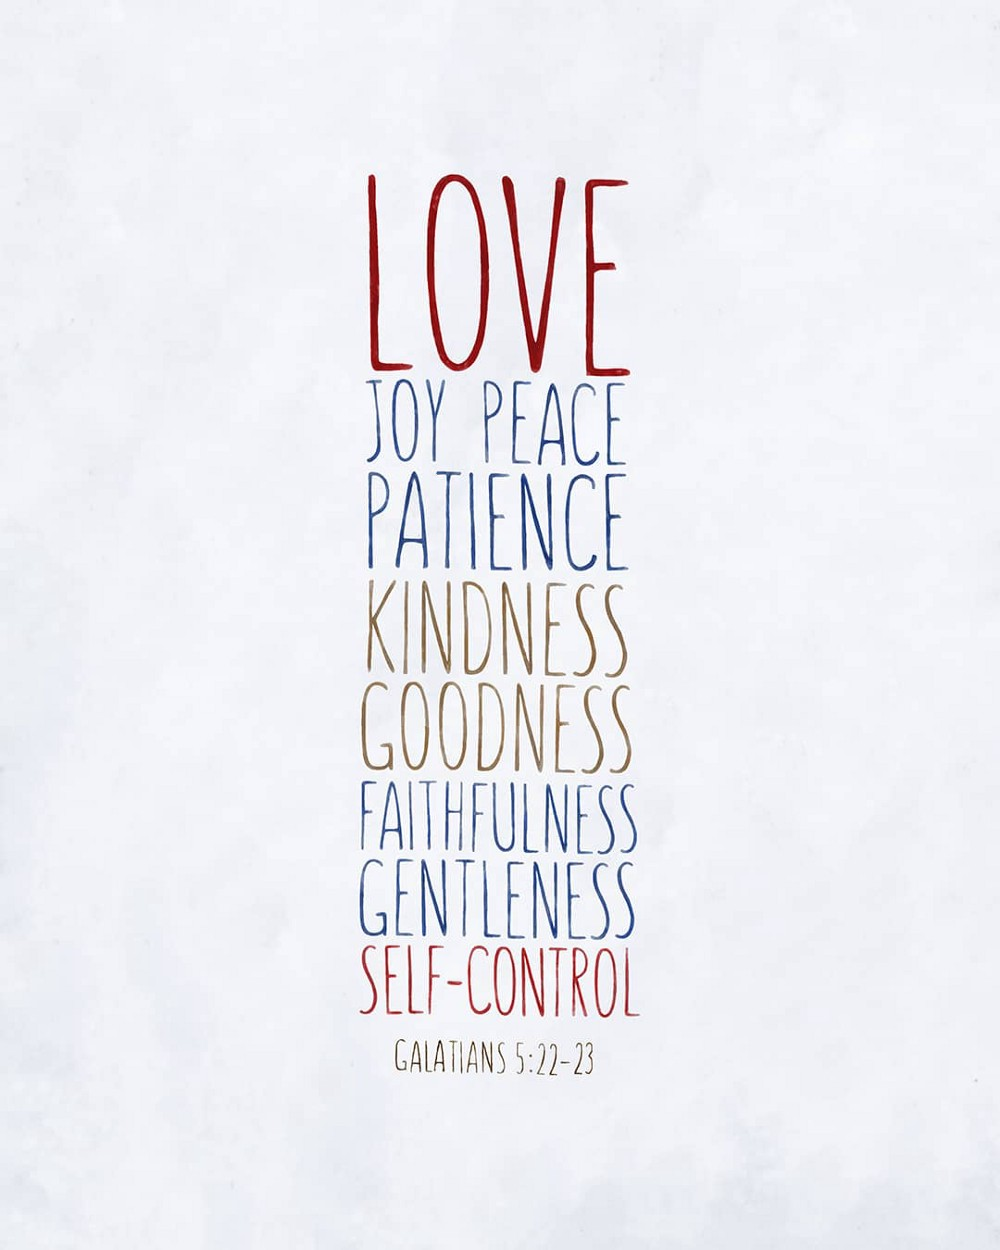 love, joy, peace, patience, kindness, goodness, faithfulness, gentleness, self-control—small voice today